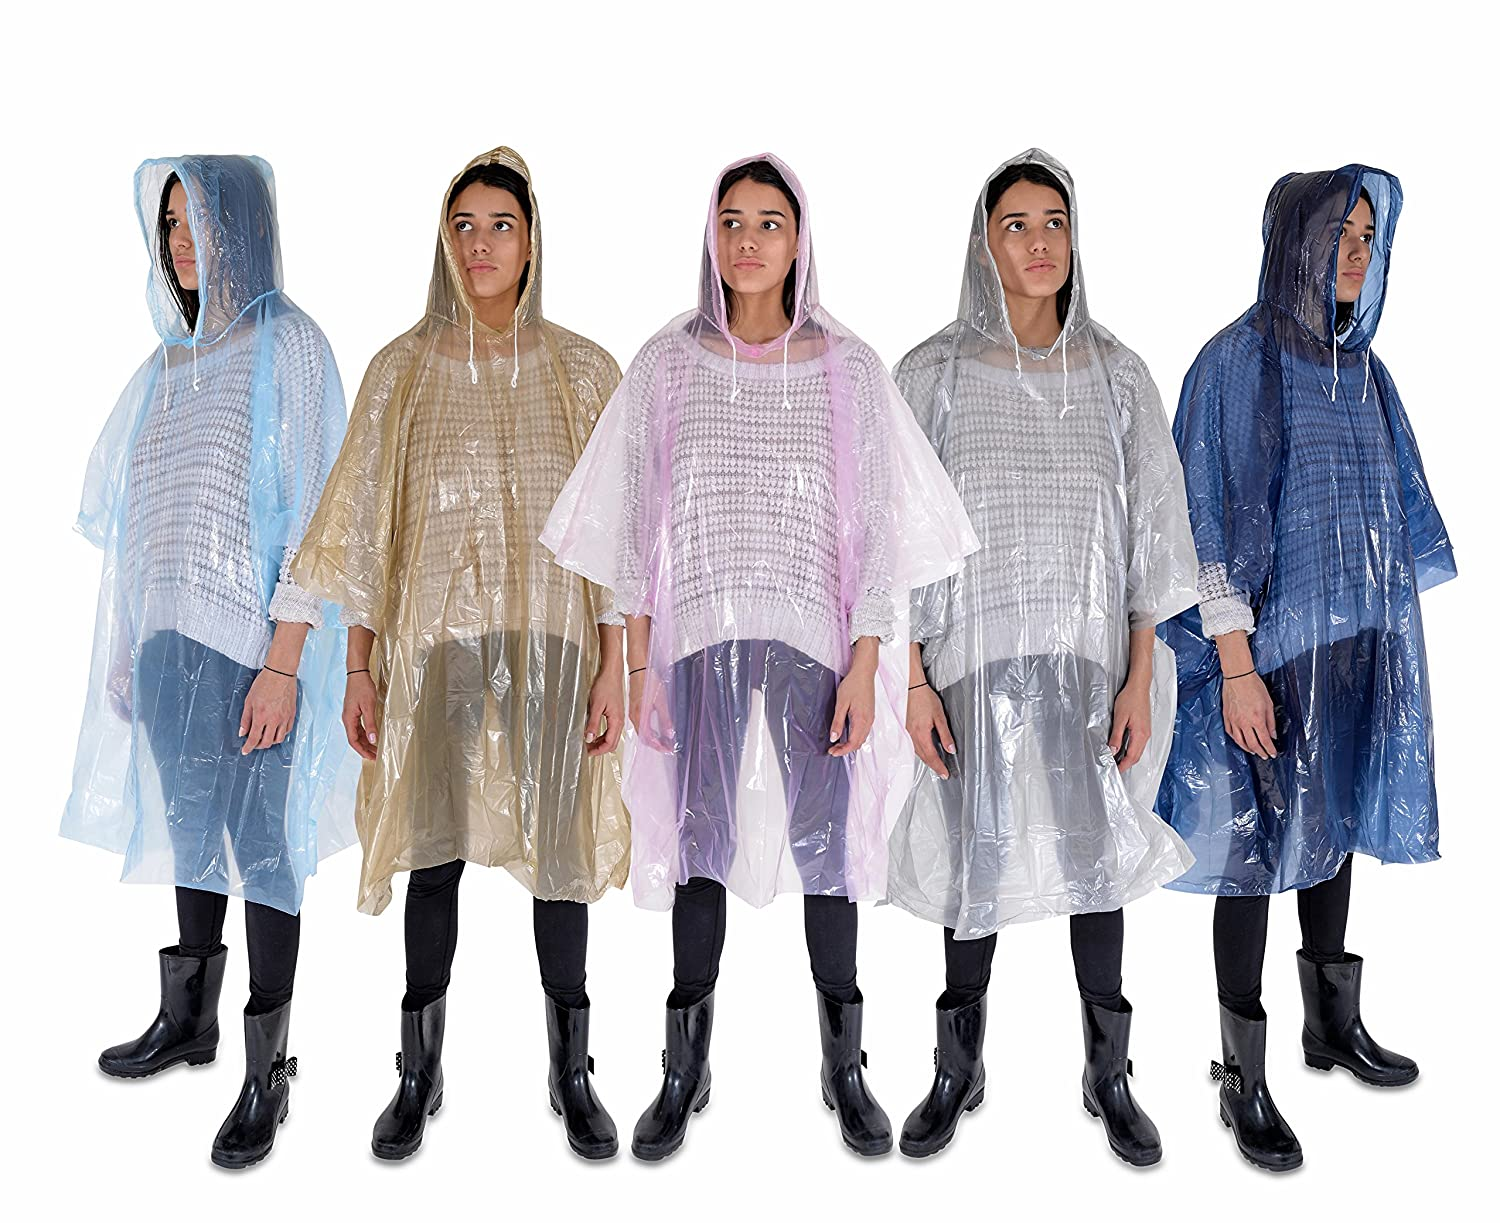 Rain Poncho: Lightweight, Waterproof Rain Gear with Drawstring Hood: 5 Pack: Emergency Disposable Rain Ponchos in Pink, Blue, Navy, Silver & Gold: Thicker Material and Packable Furrysmile